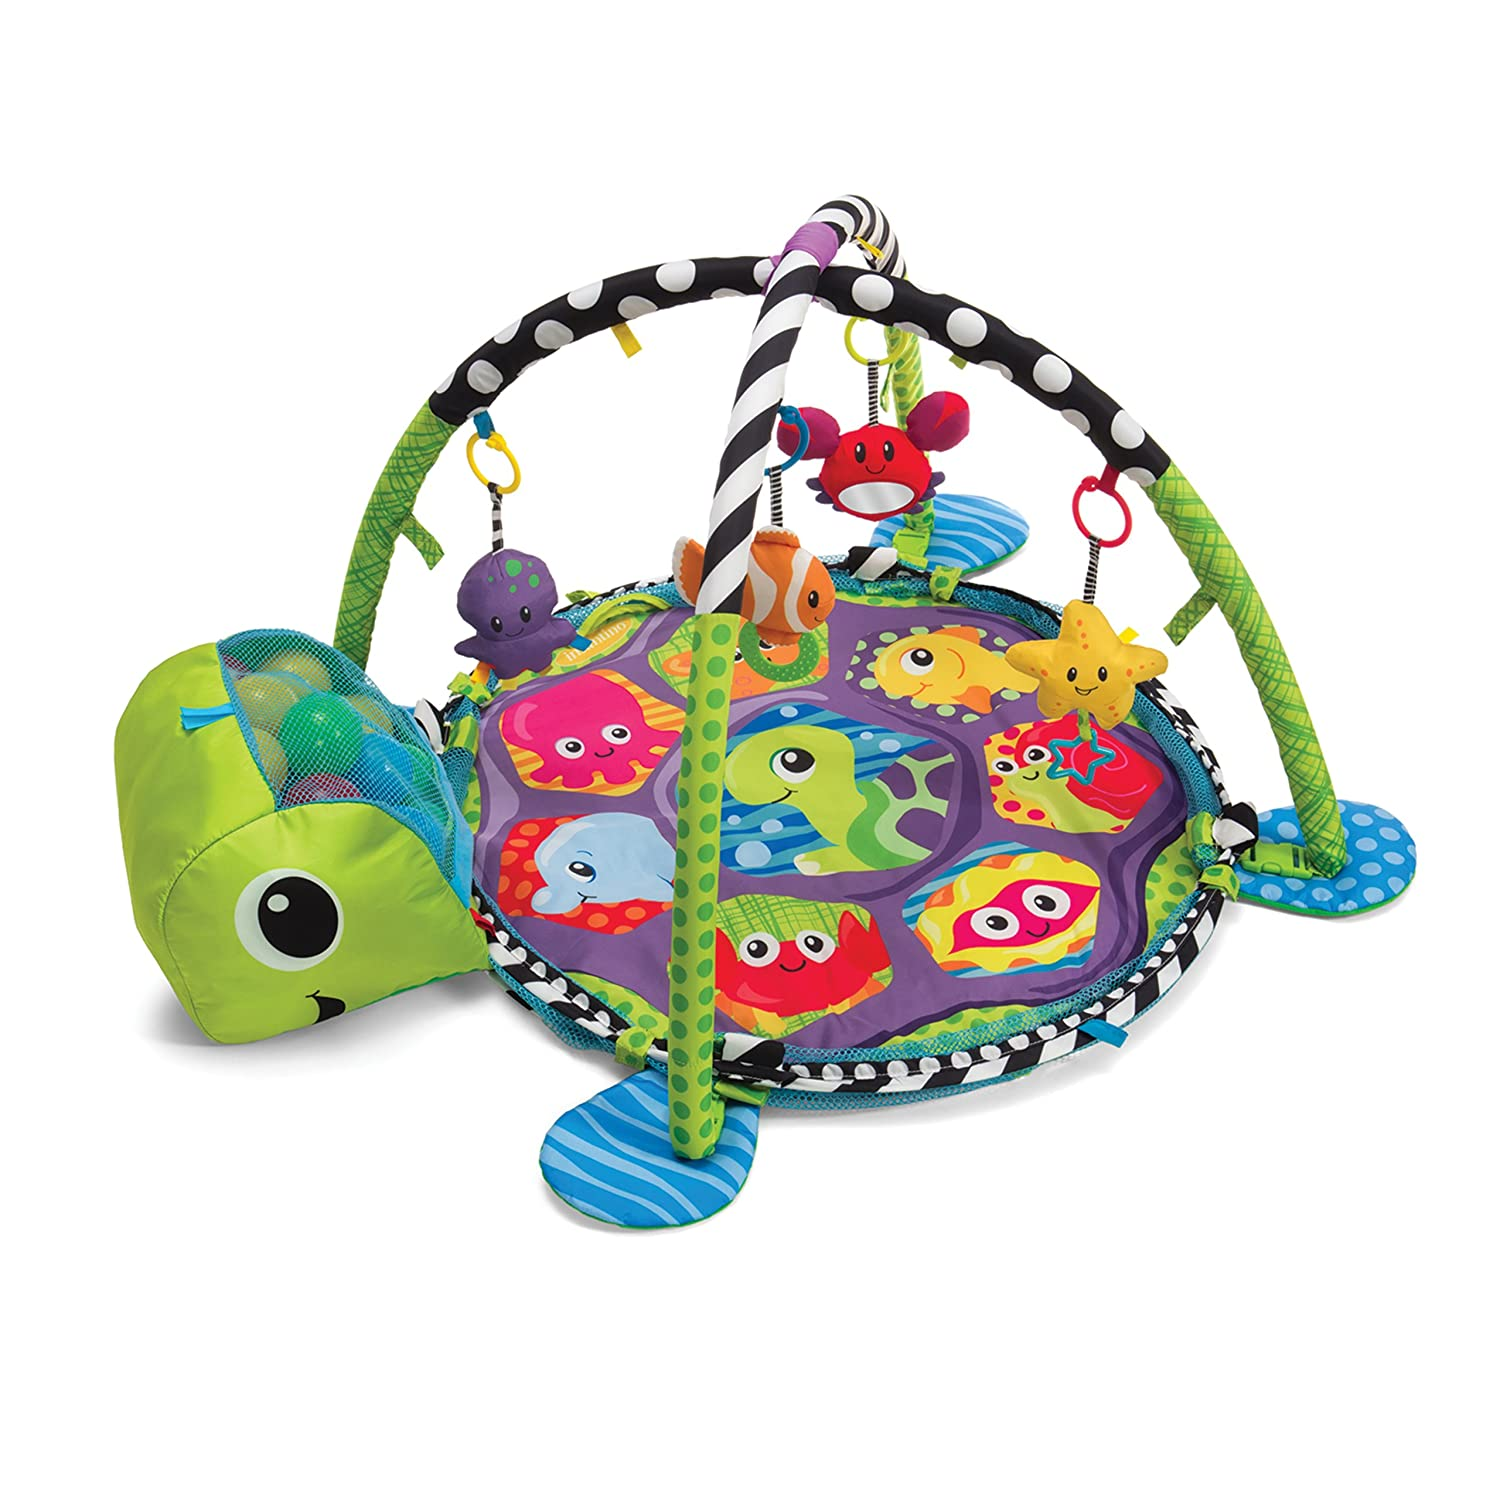 Amazon Infantino Grow with me Activity Gym and Ball Pit